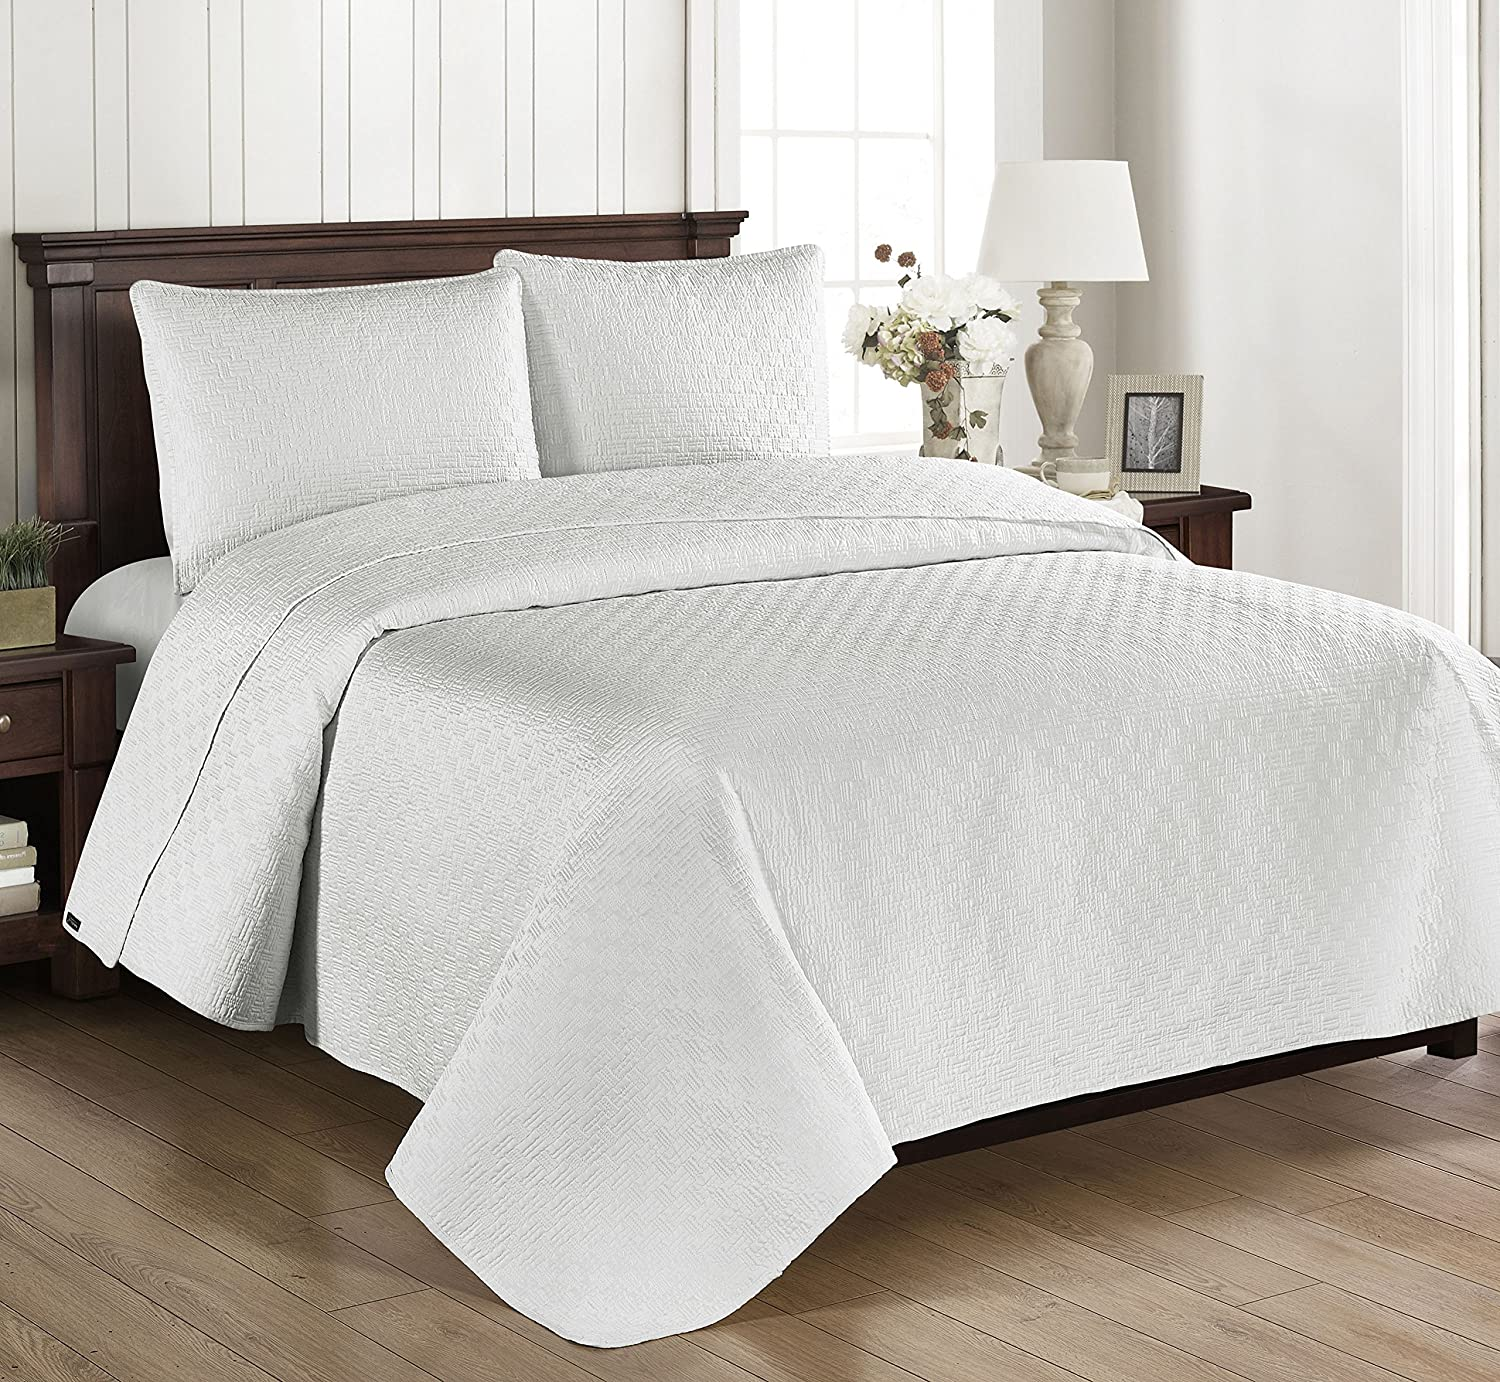 Brielle Home Basket Weave Quilt Set, Full/Queen, Off-White